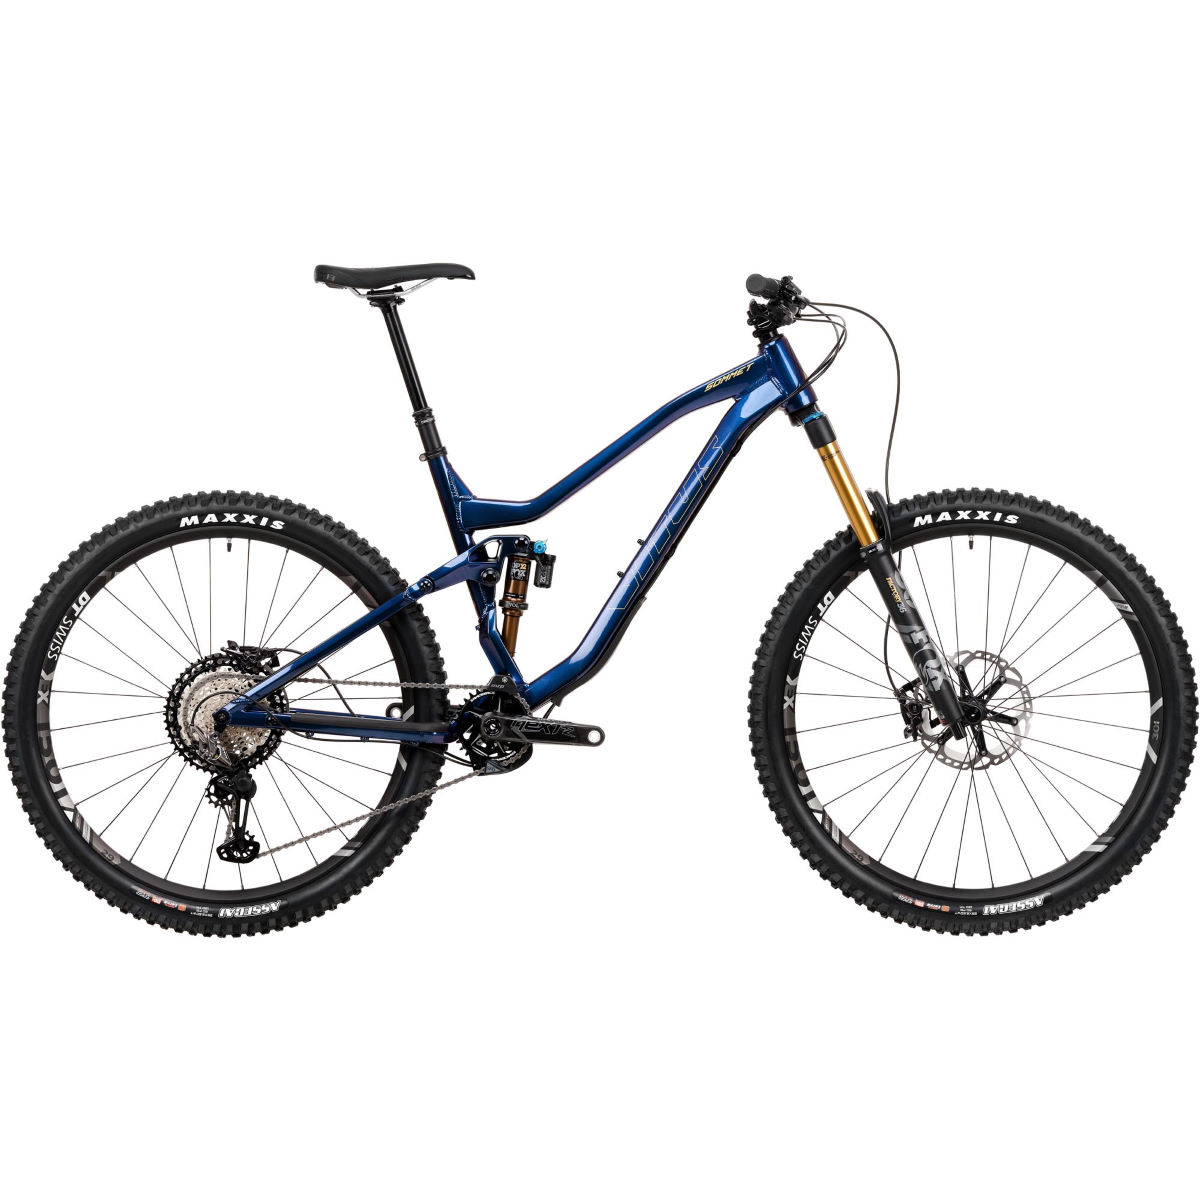 Vitus Vitus Sommet 29 VRX Bike (XTR/XT 1x12 - 2020)   Full Suspension Mountain Bikes